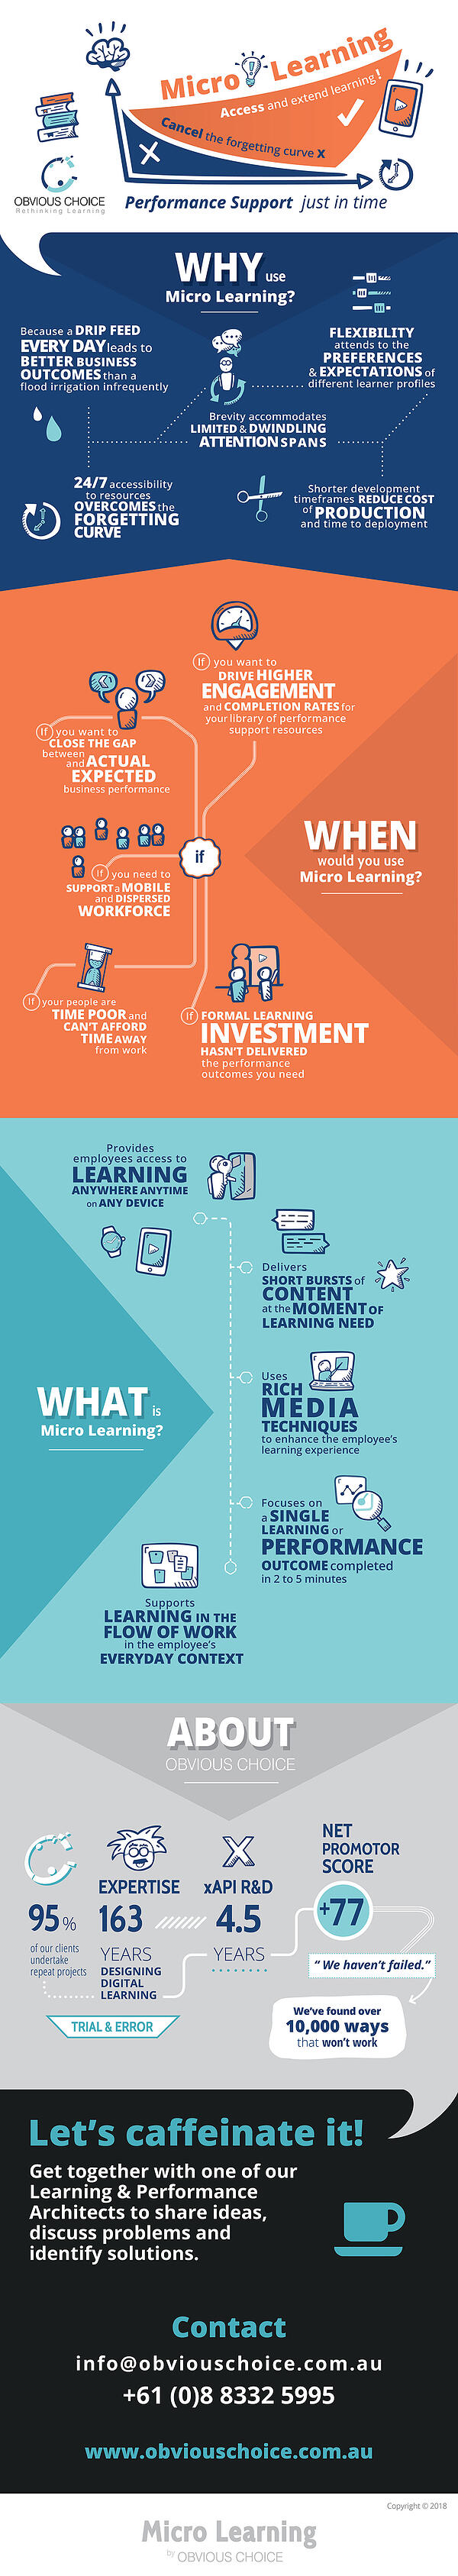 Micro-Learning-Obvious-Choice-infographic